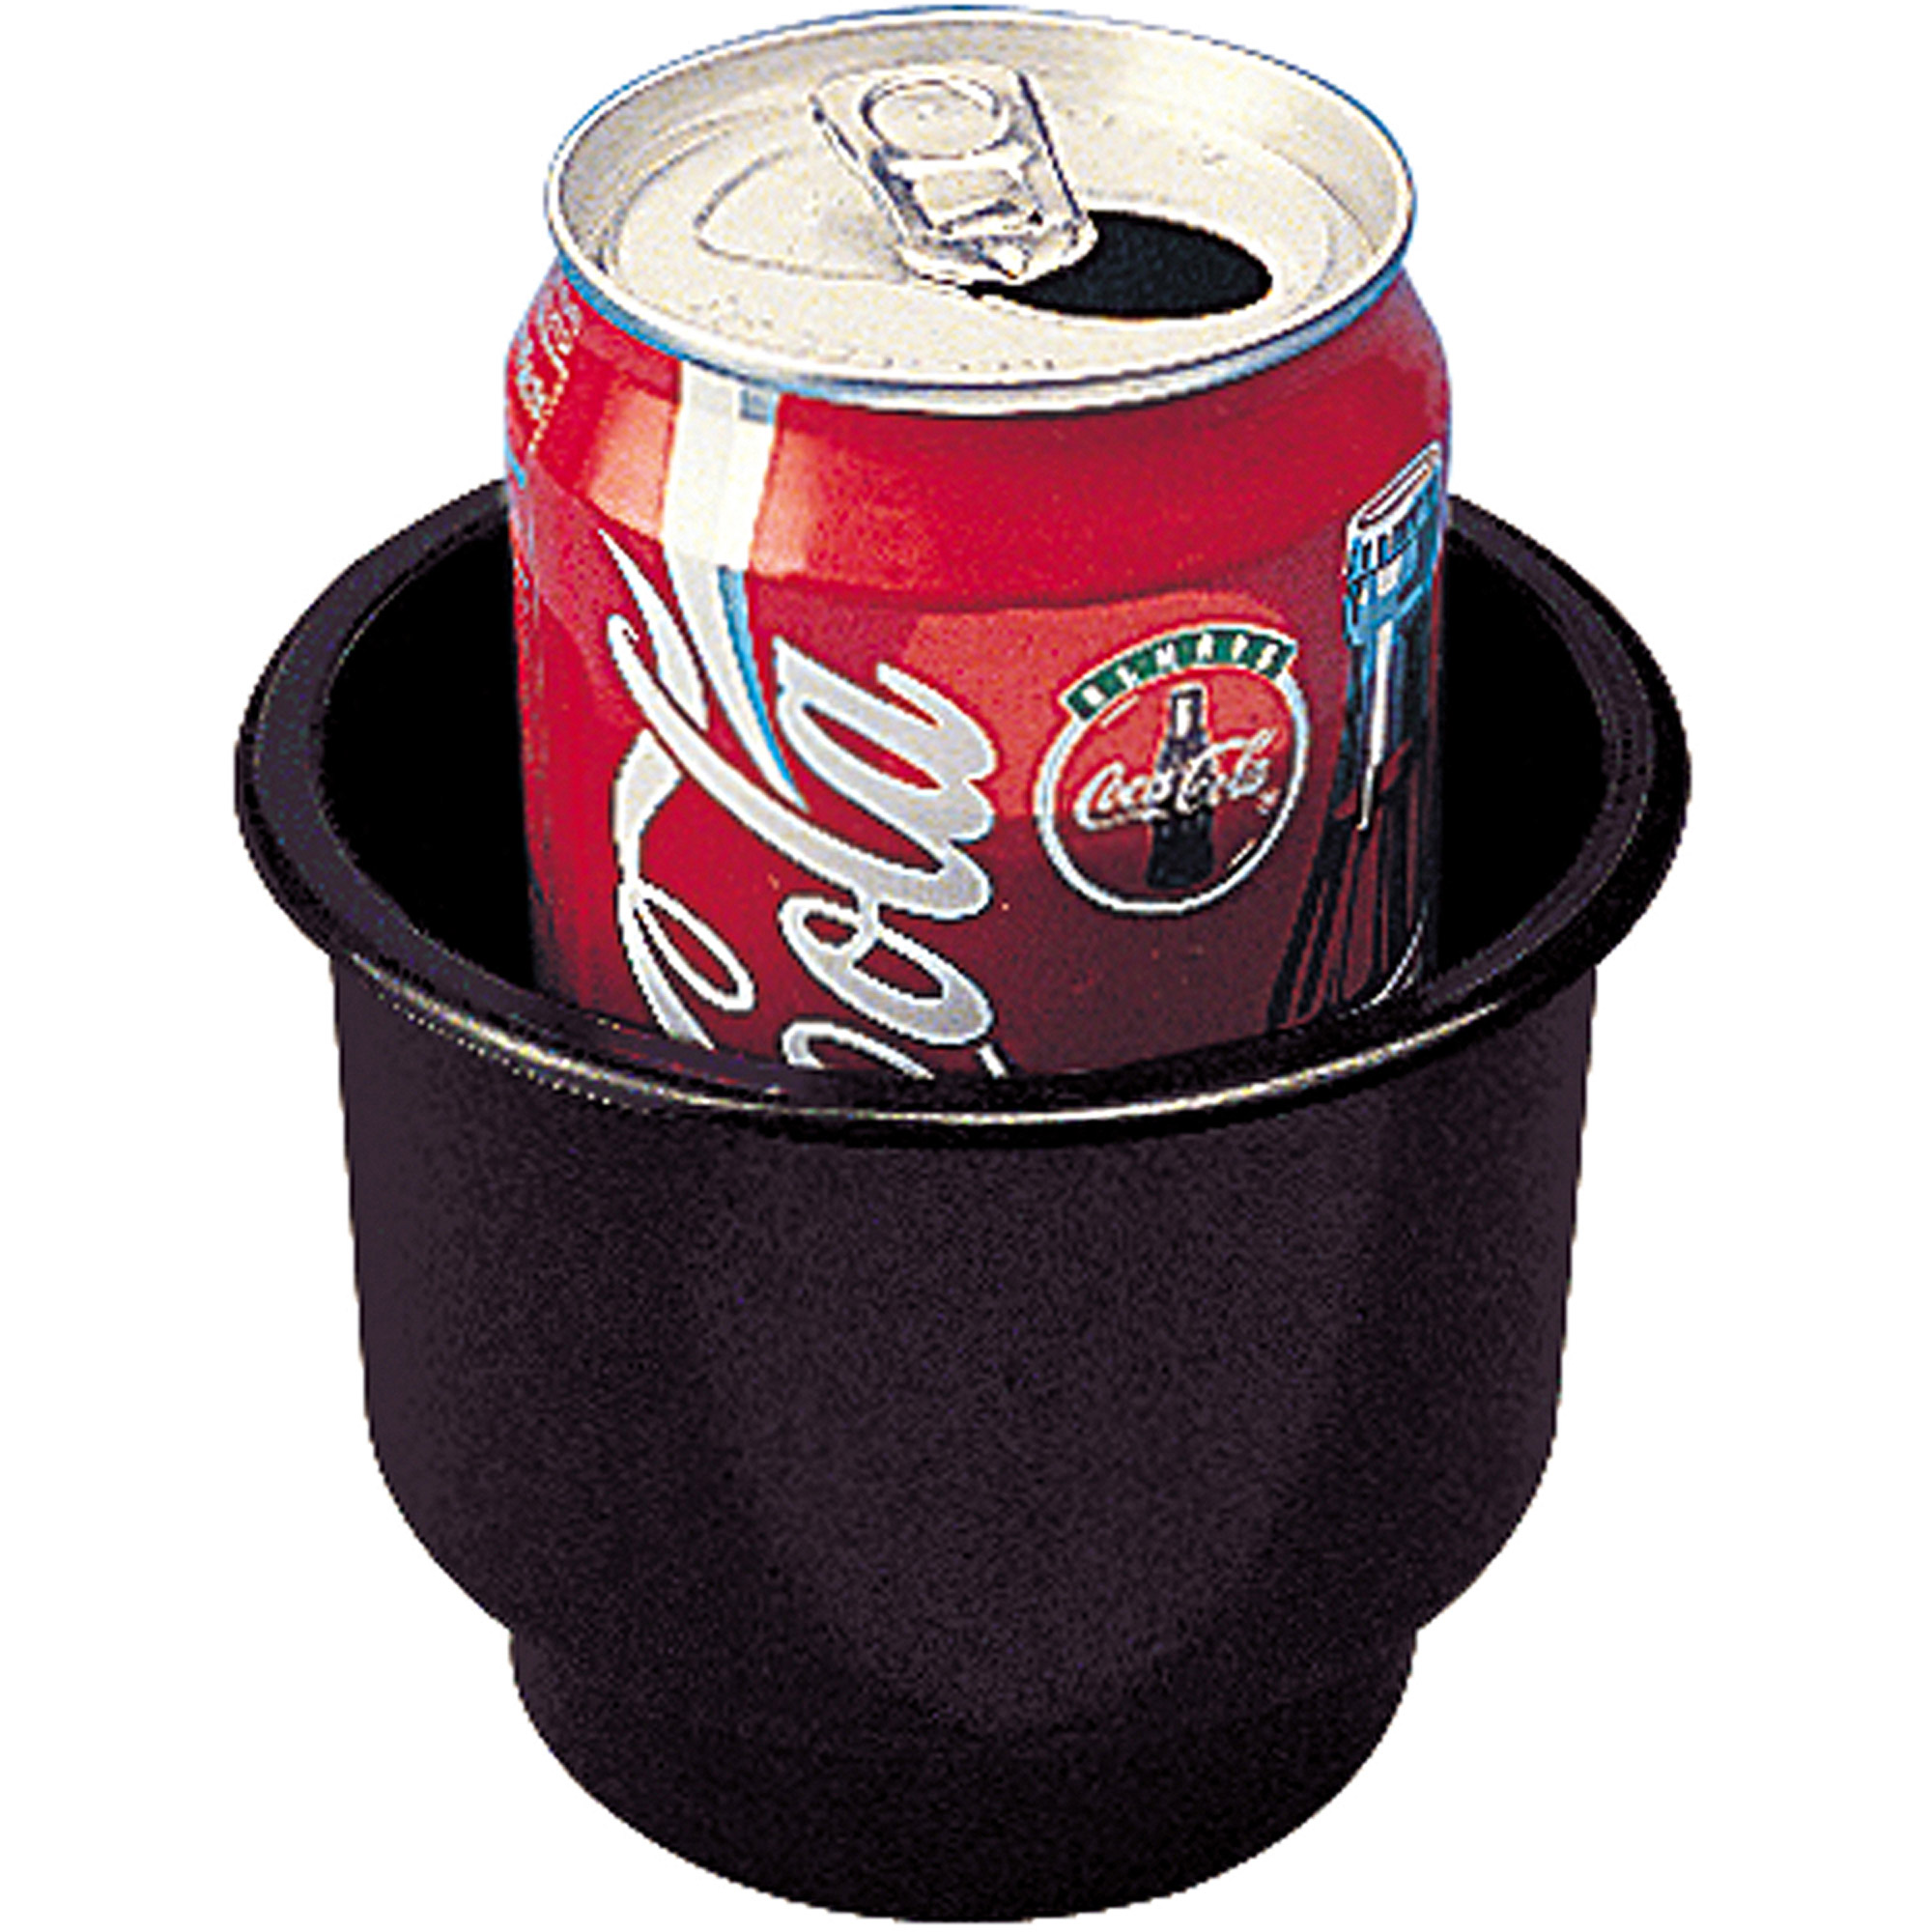 "Sea Dog Flush Mount Combo Drink Holder with Drain Holes, 3-1/4"" Deep, White, 3-3/4"" Hole Required"